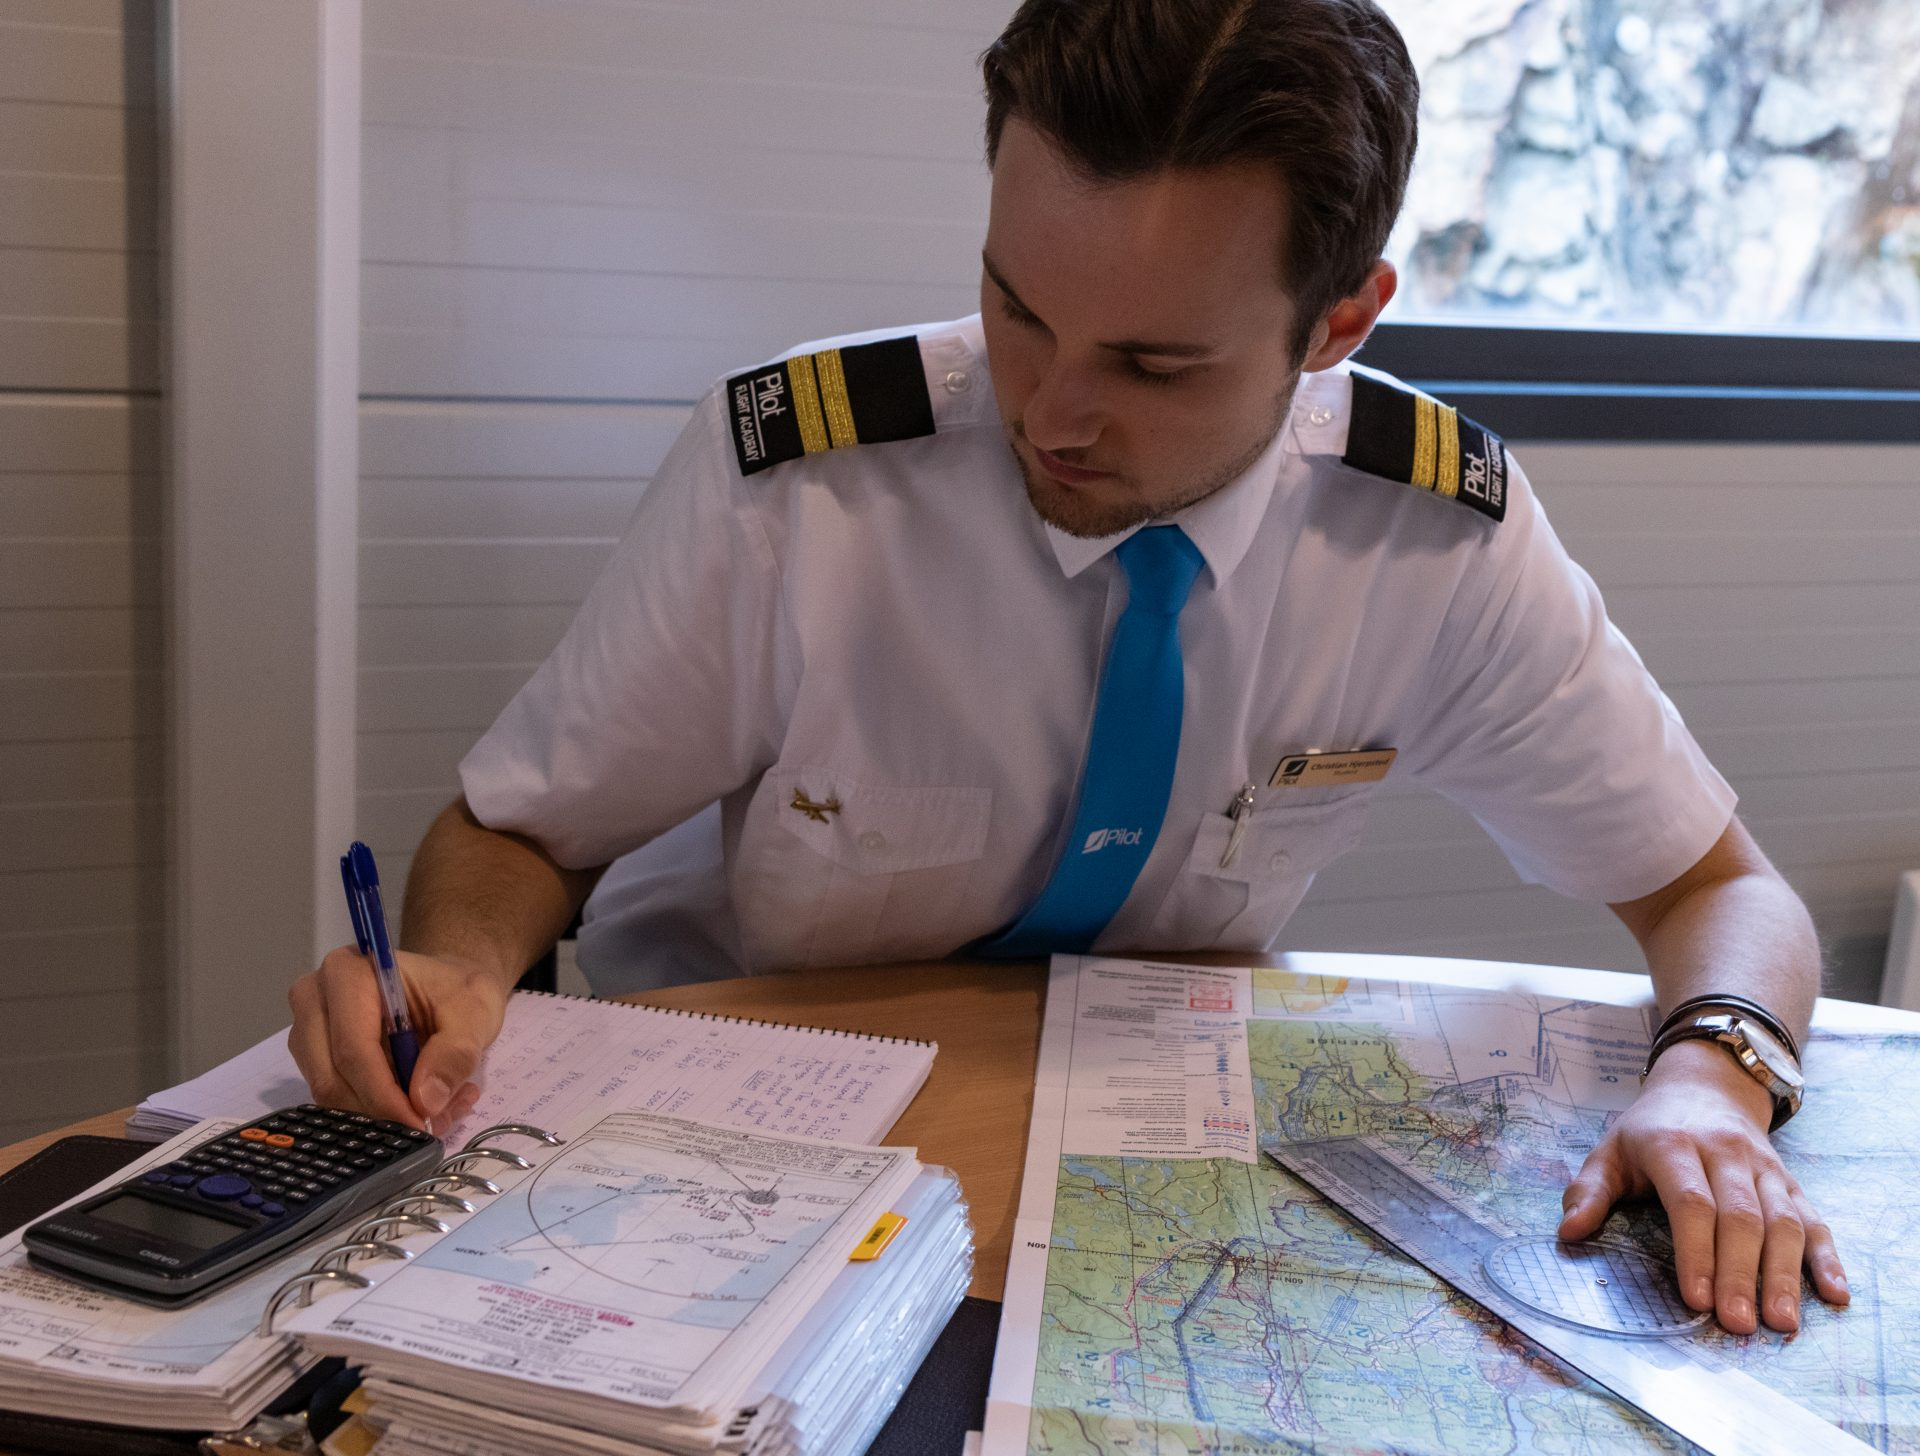 Student hjerpsted is making calculations for a flight